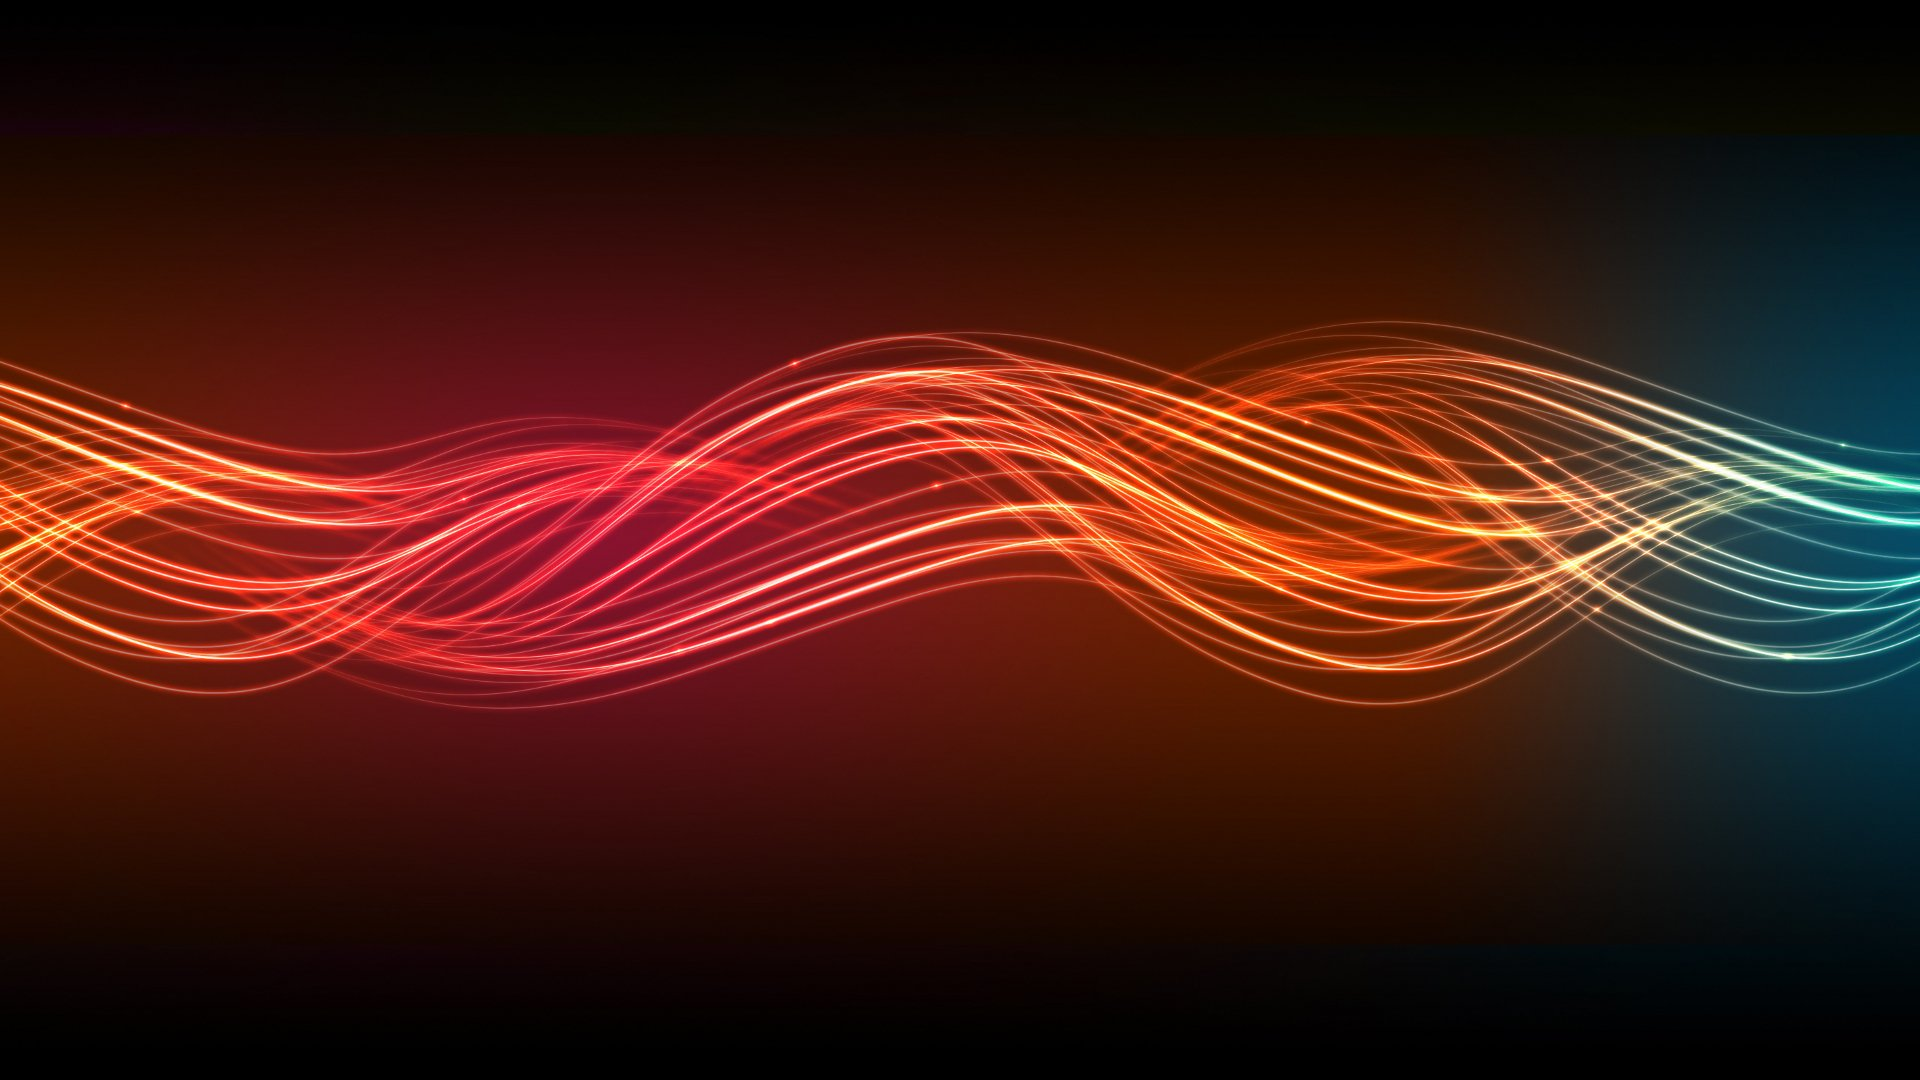 Hd Background Wallpaper 800x600: Red Neon Wallpaper